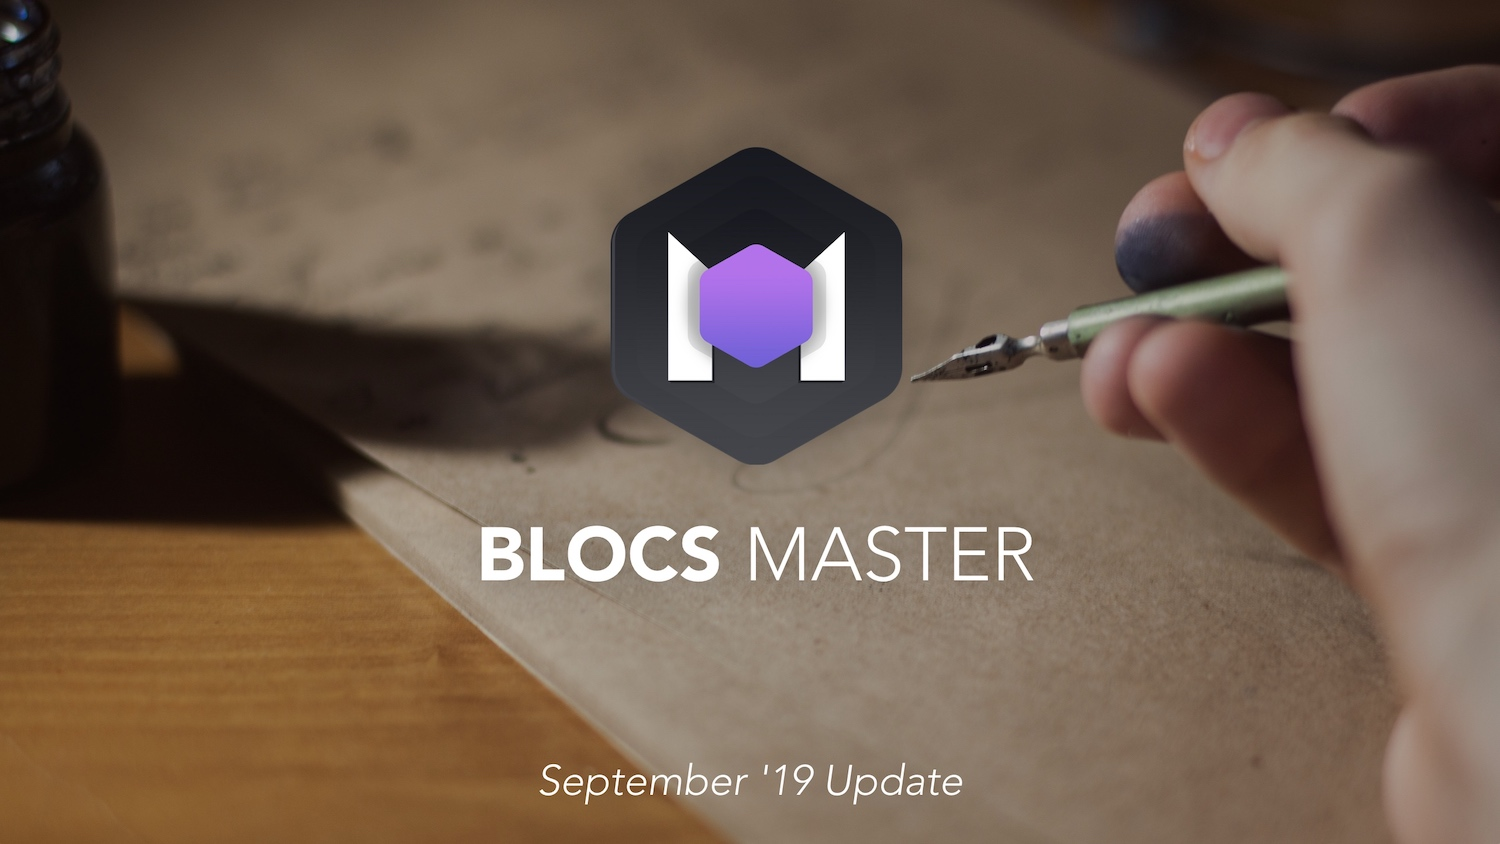 This month's update includes the videos covering Forms.